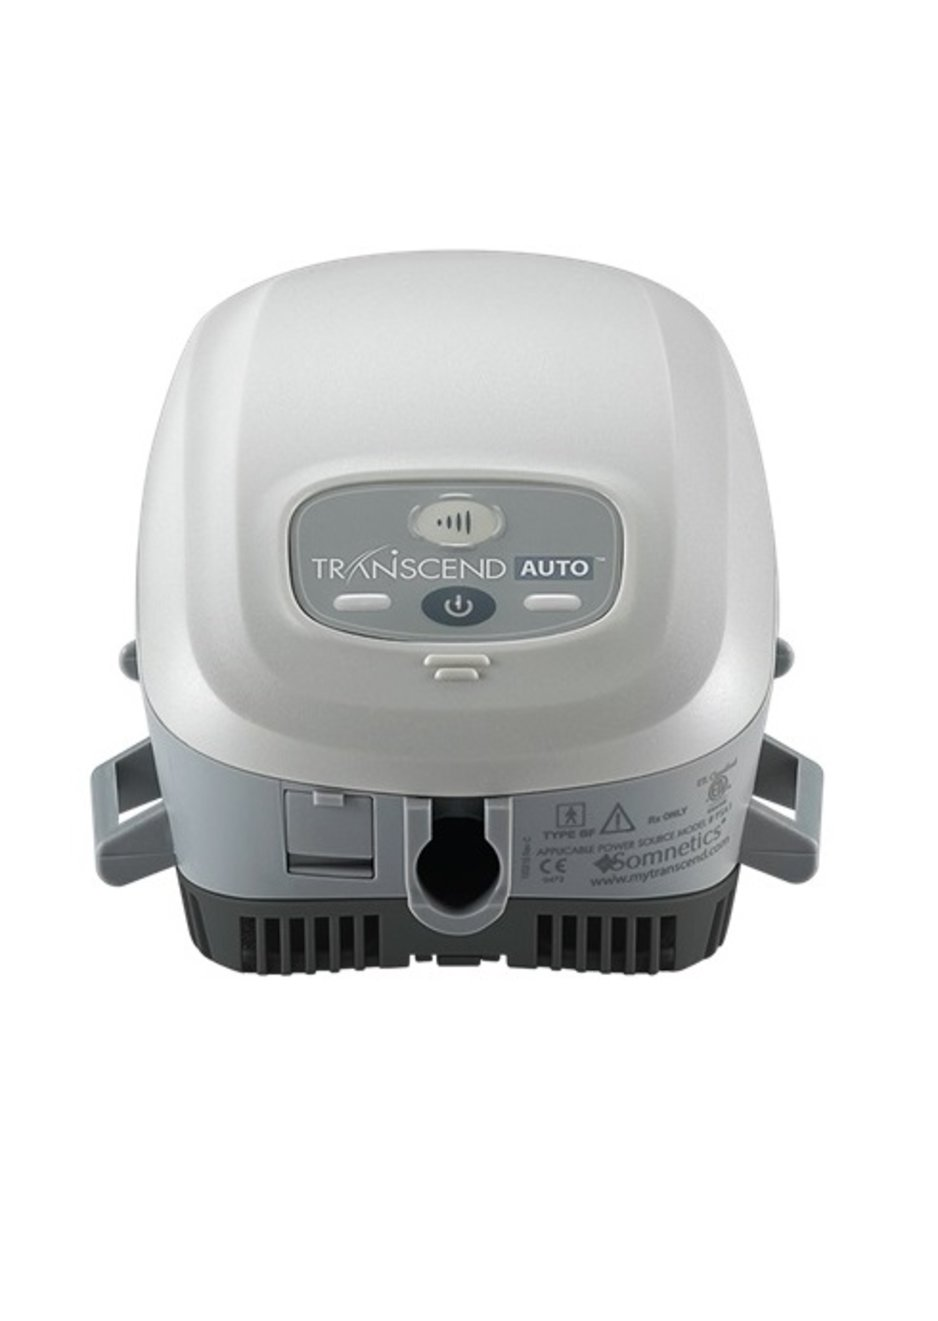 Transcend CPAP Machine user guide